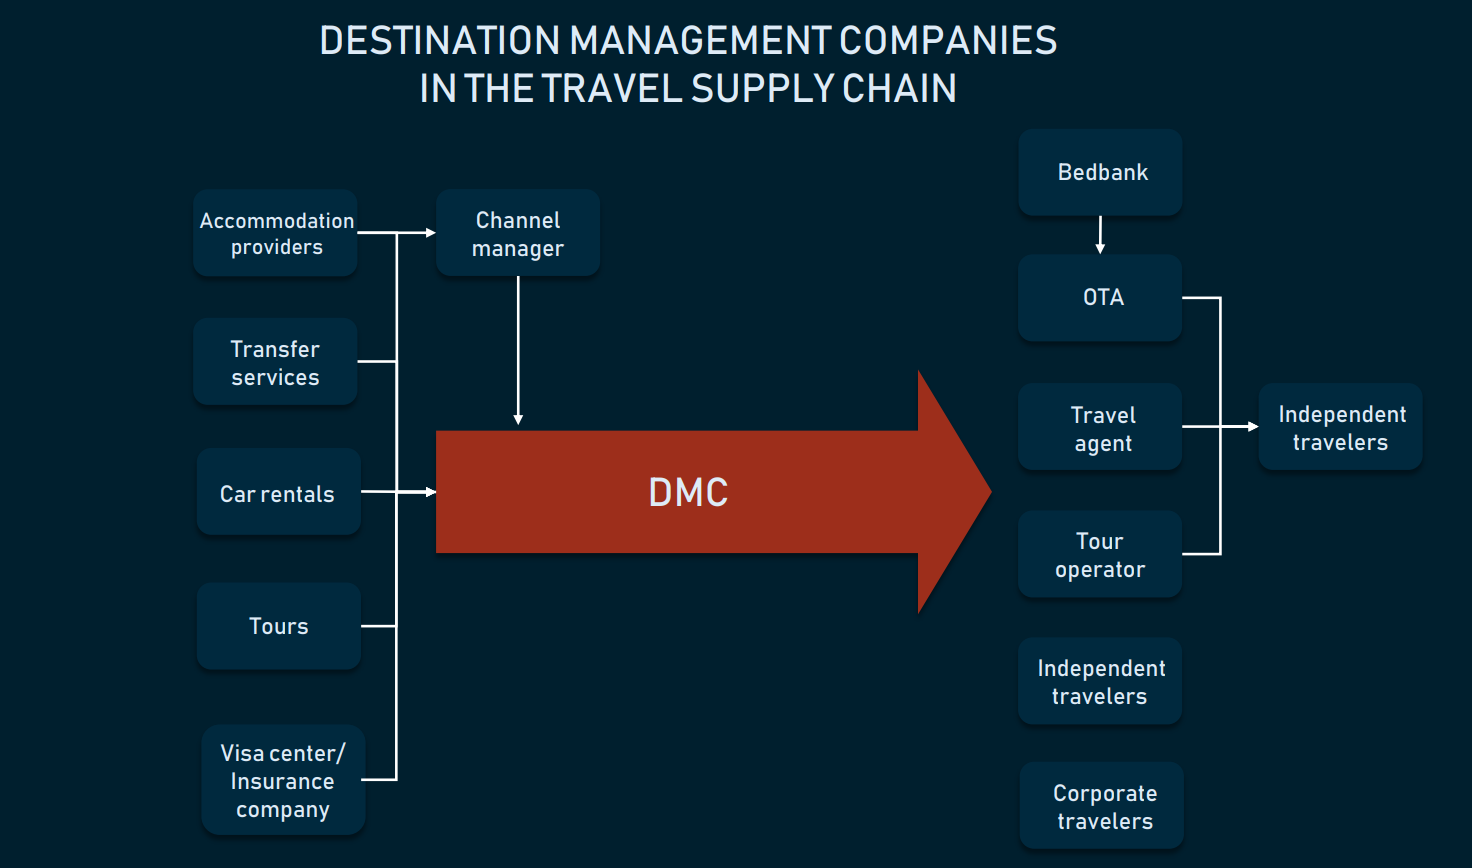 The role of DMC in the travel supply chain